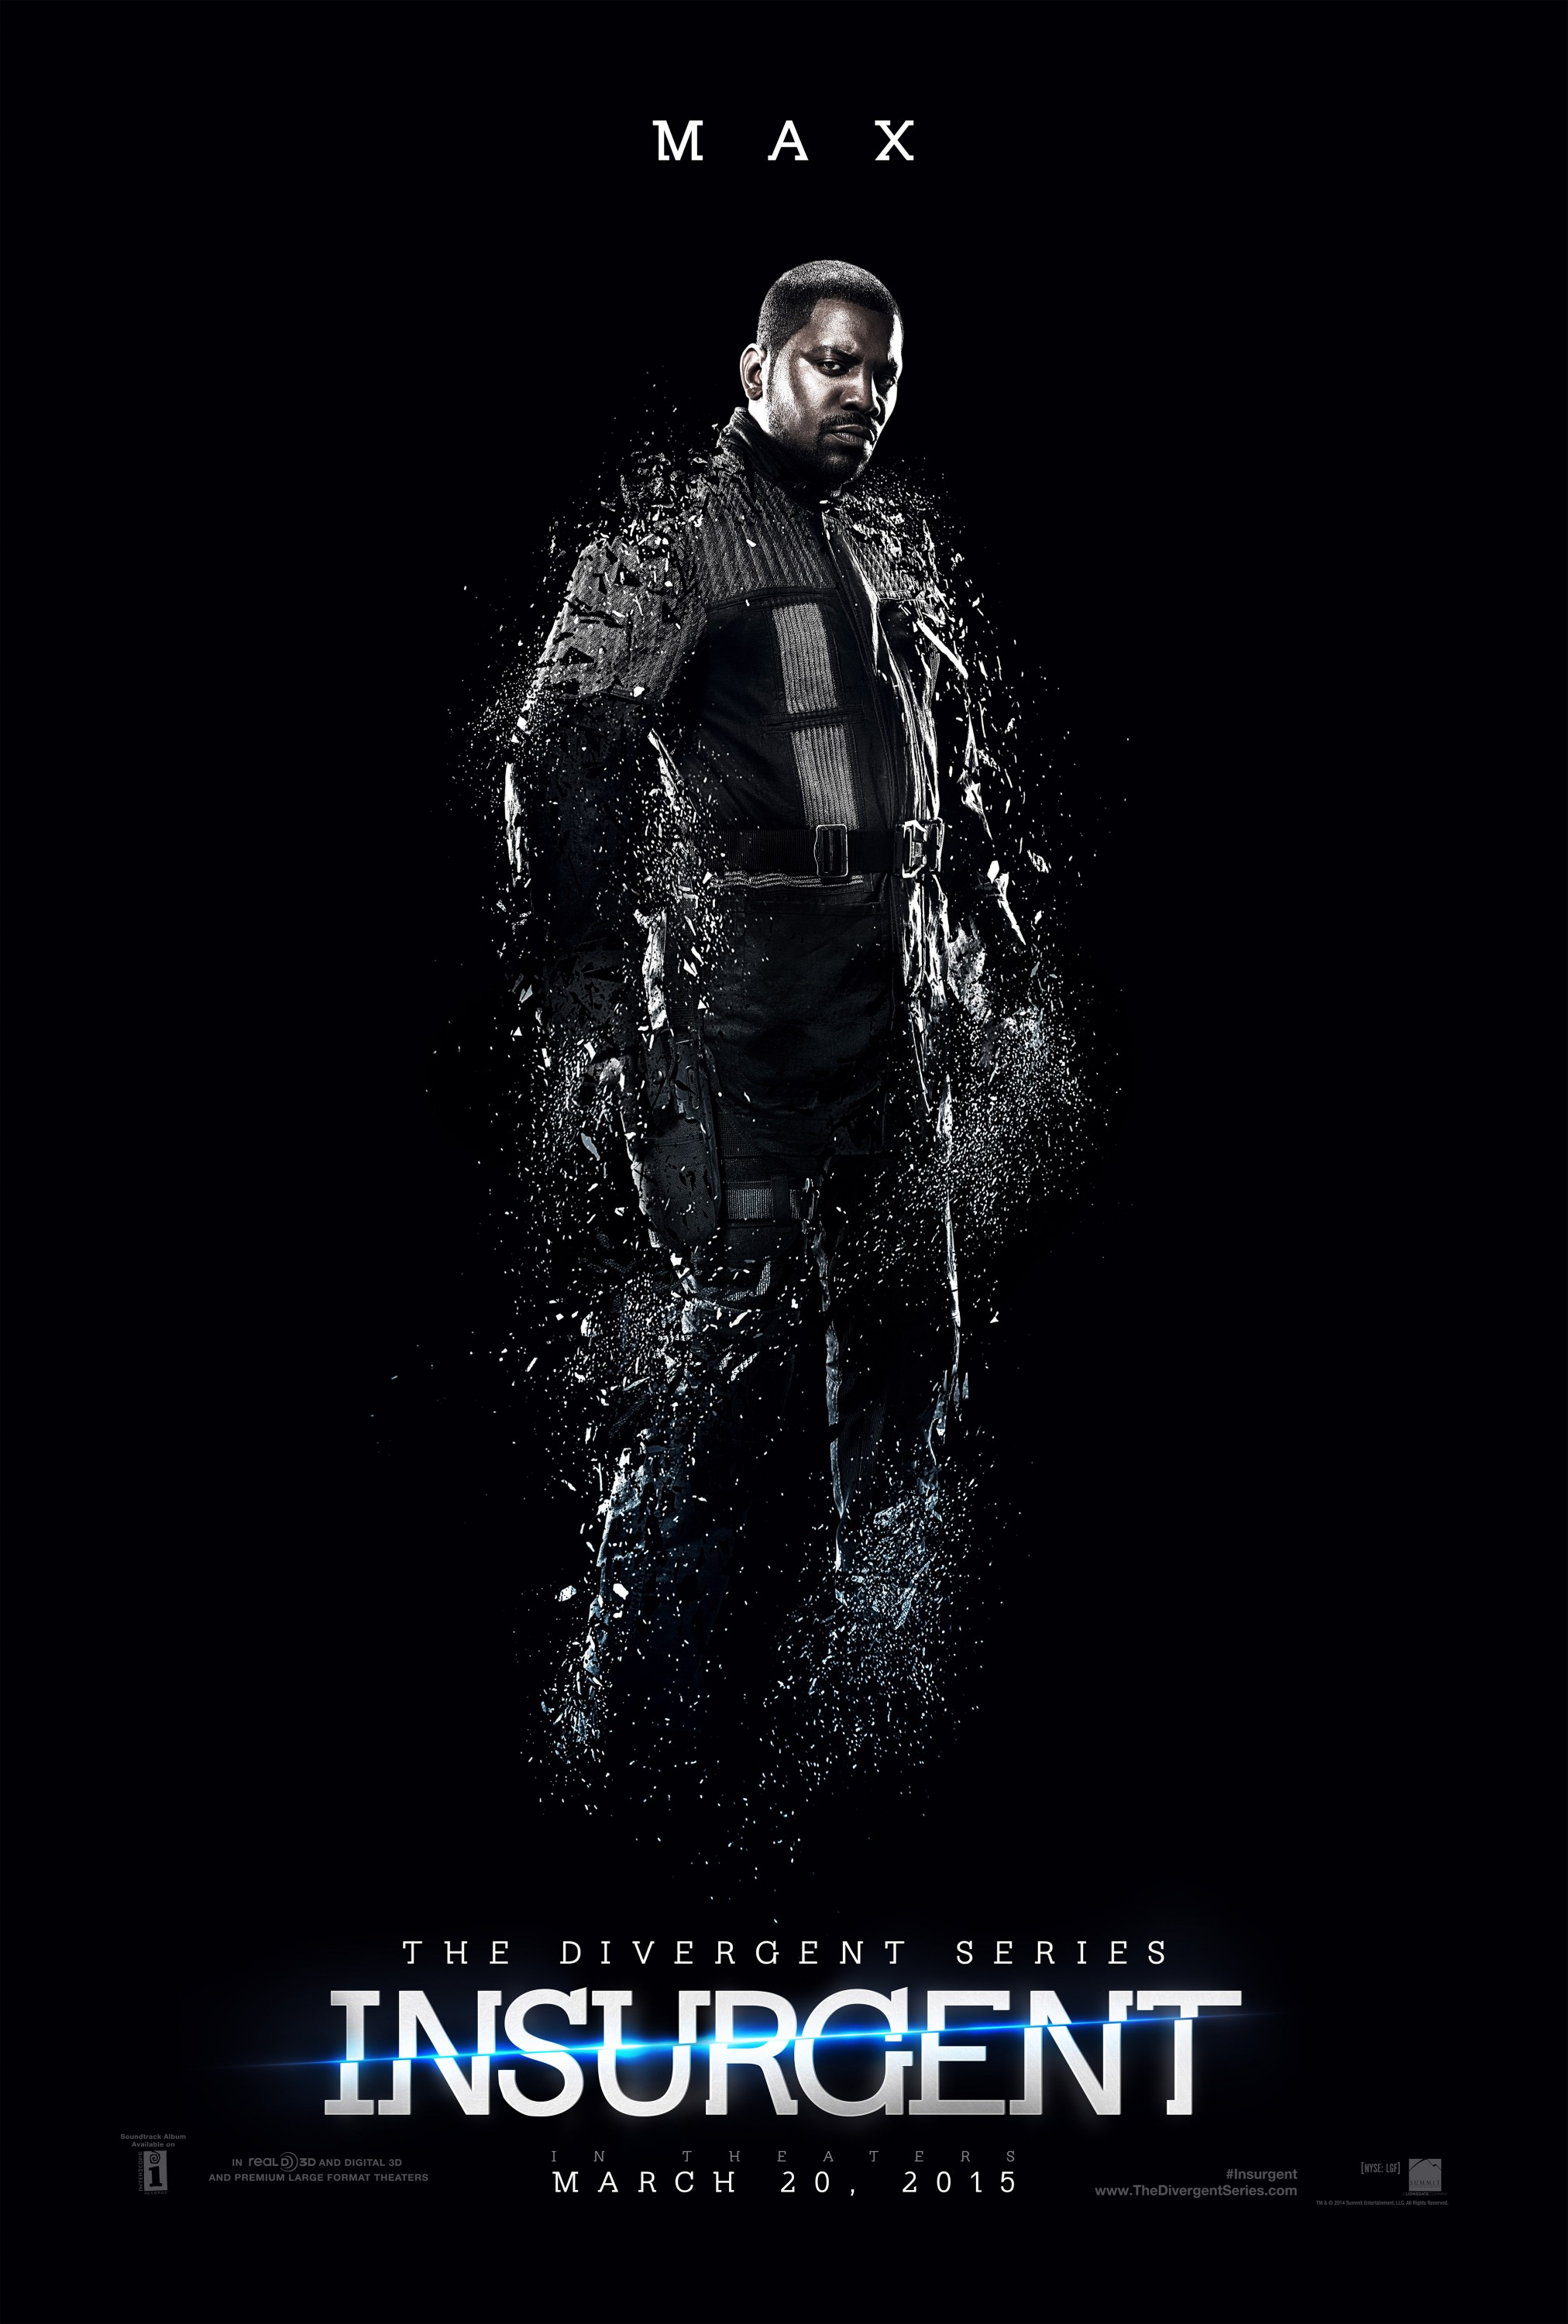 Insurgent-Official Poster XXLG-30OUTUBRO2014-08